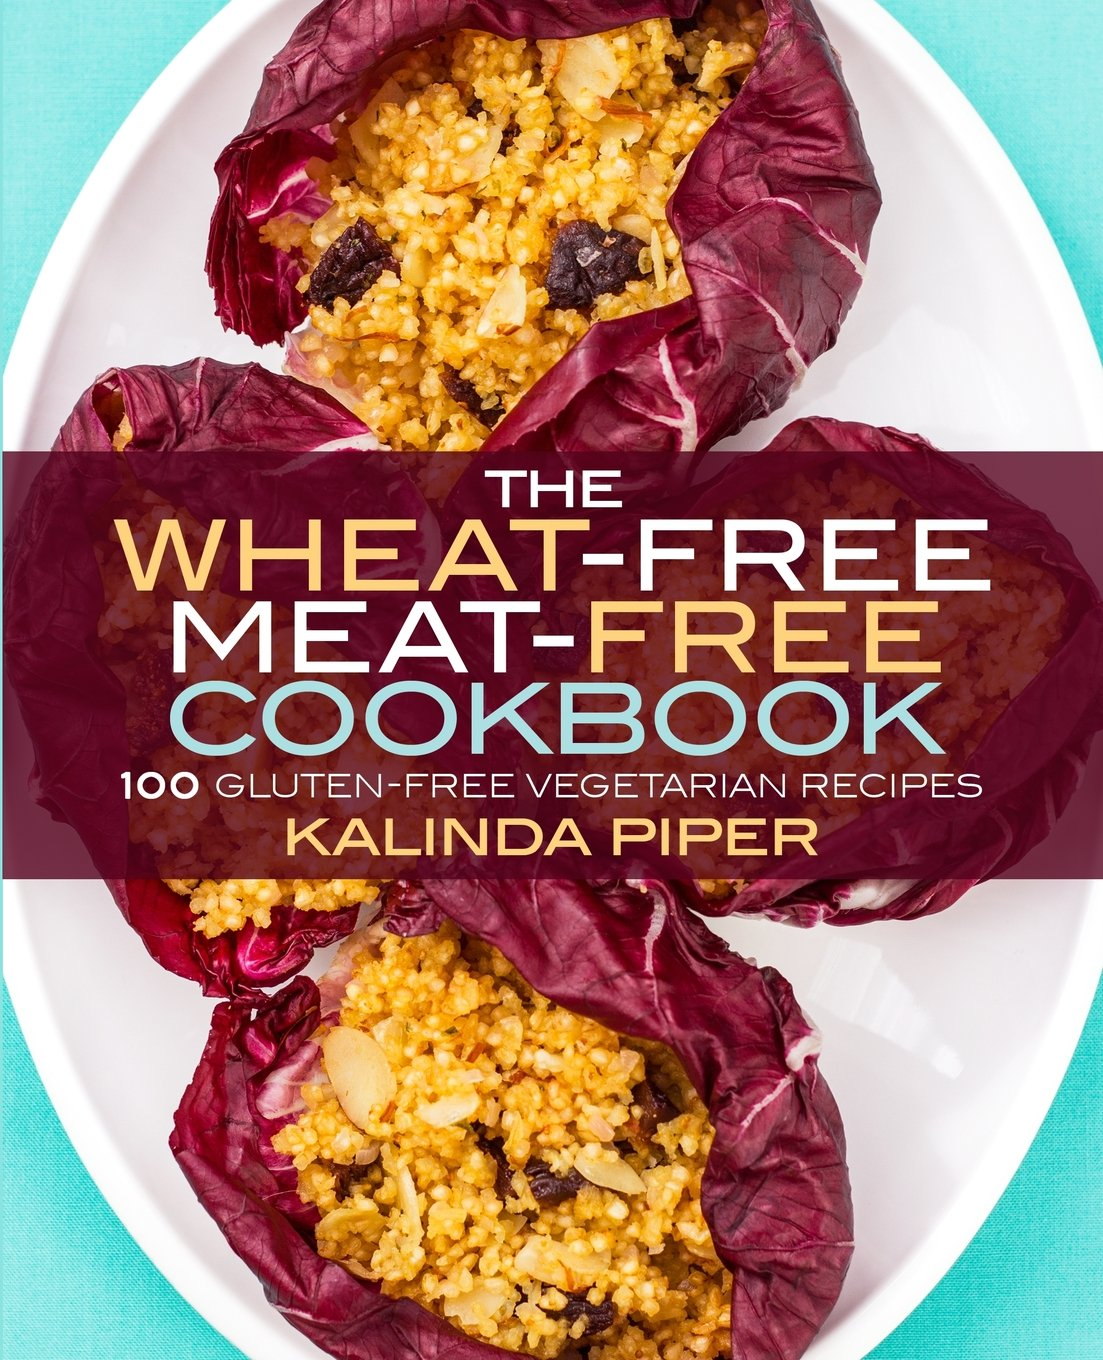 The wheat free meat free cookbook 100 gluten free vegetarian the wheat free meat free cookbook 100 gluten free vegetarian recipes kalinda piper 9780692233795 amazon books forumfinder Images